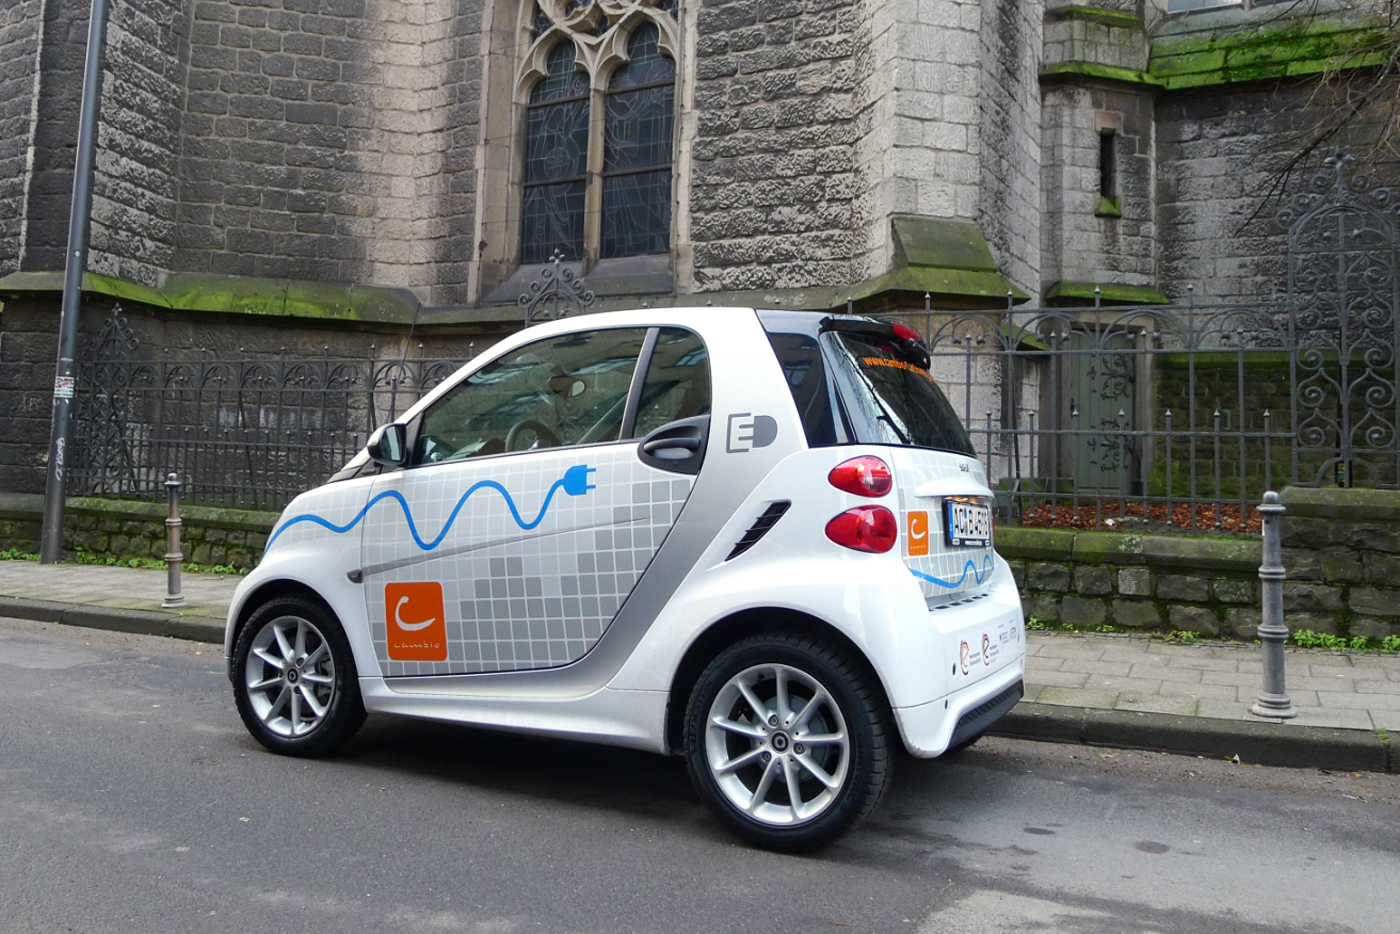 cambio CarSharing e-mobil